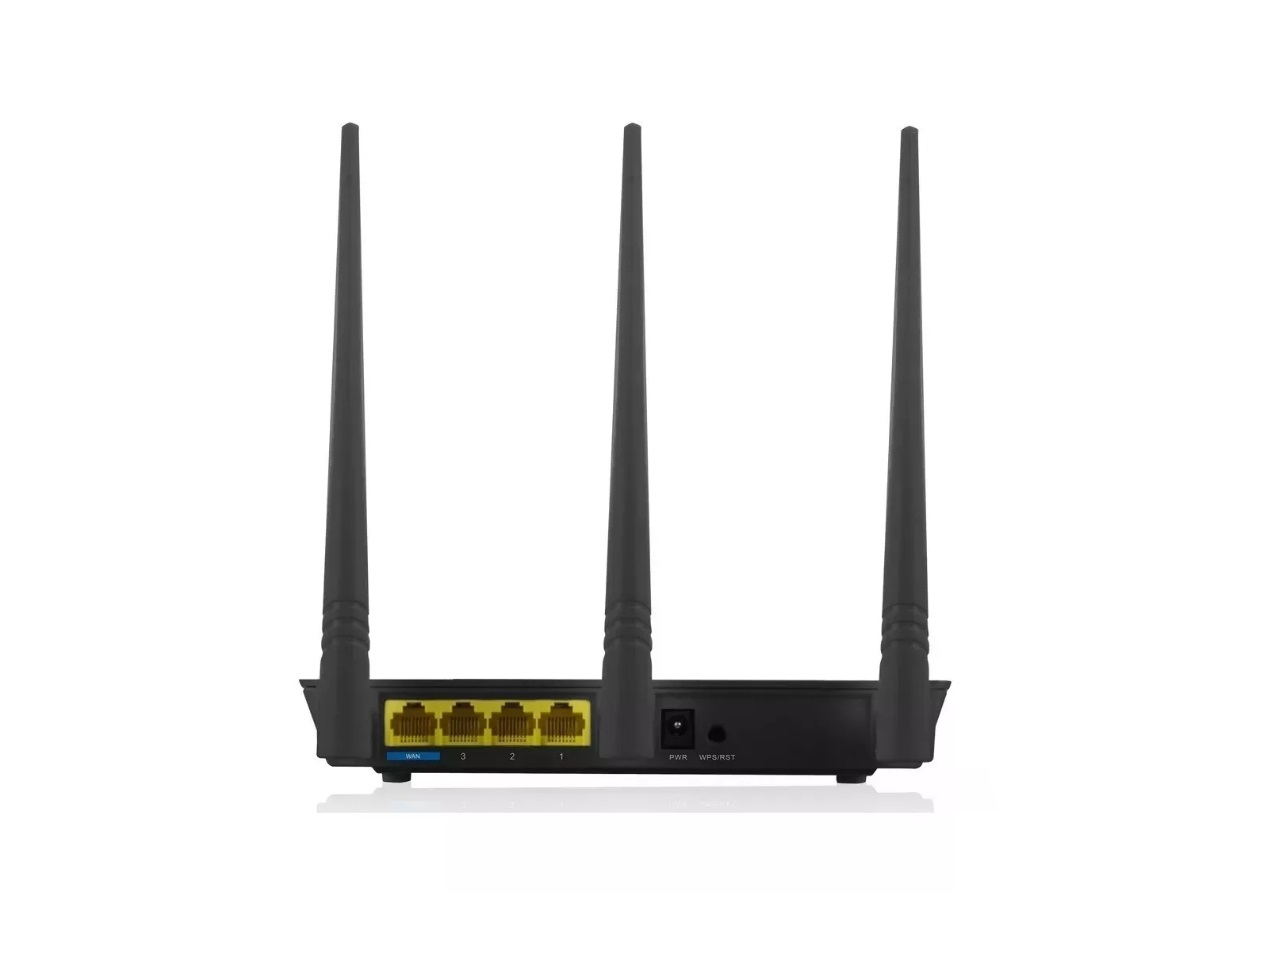 Router Nexxt Nebula 300 Plus